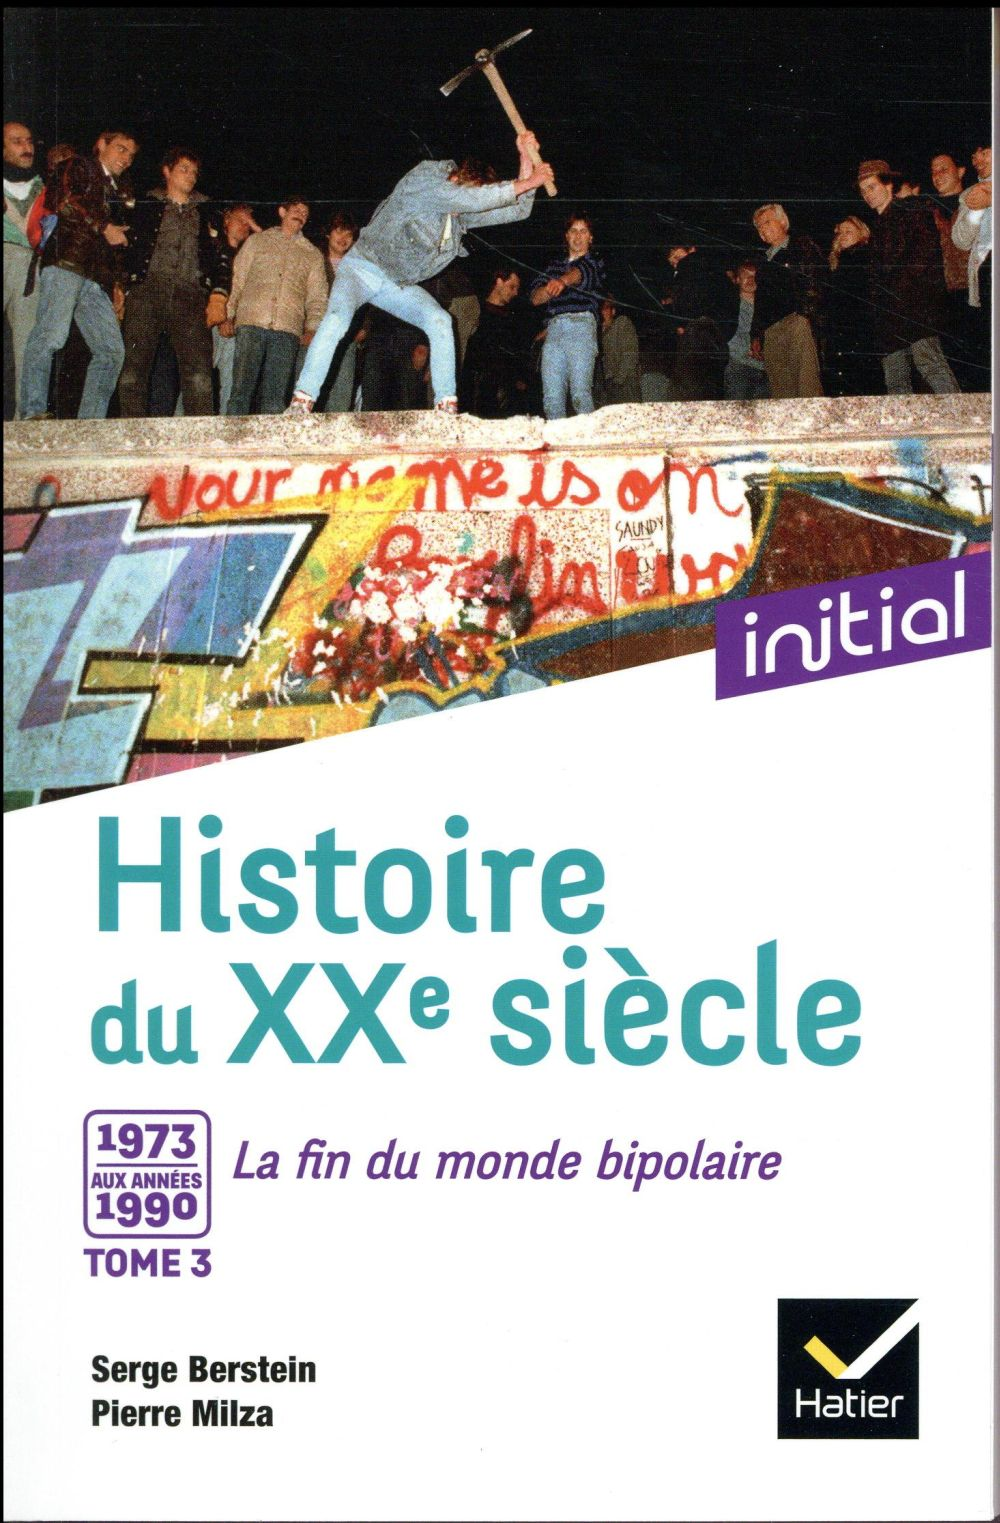 INITIAL - HISTOIRE DU XXE SIECLE TOME 3